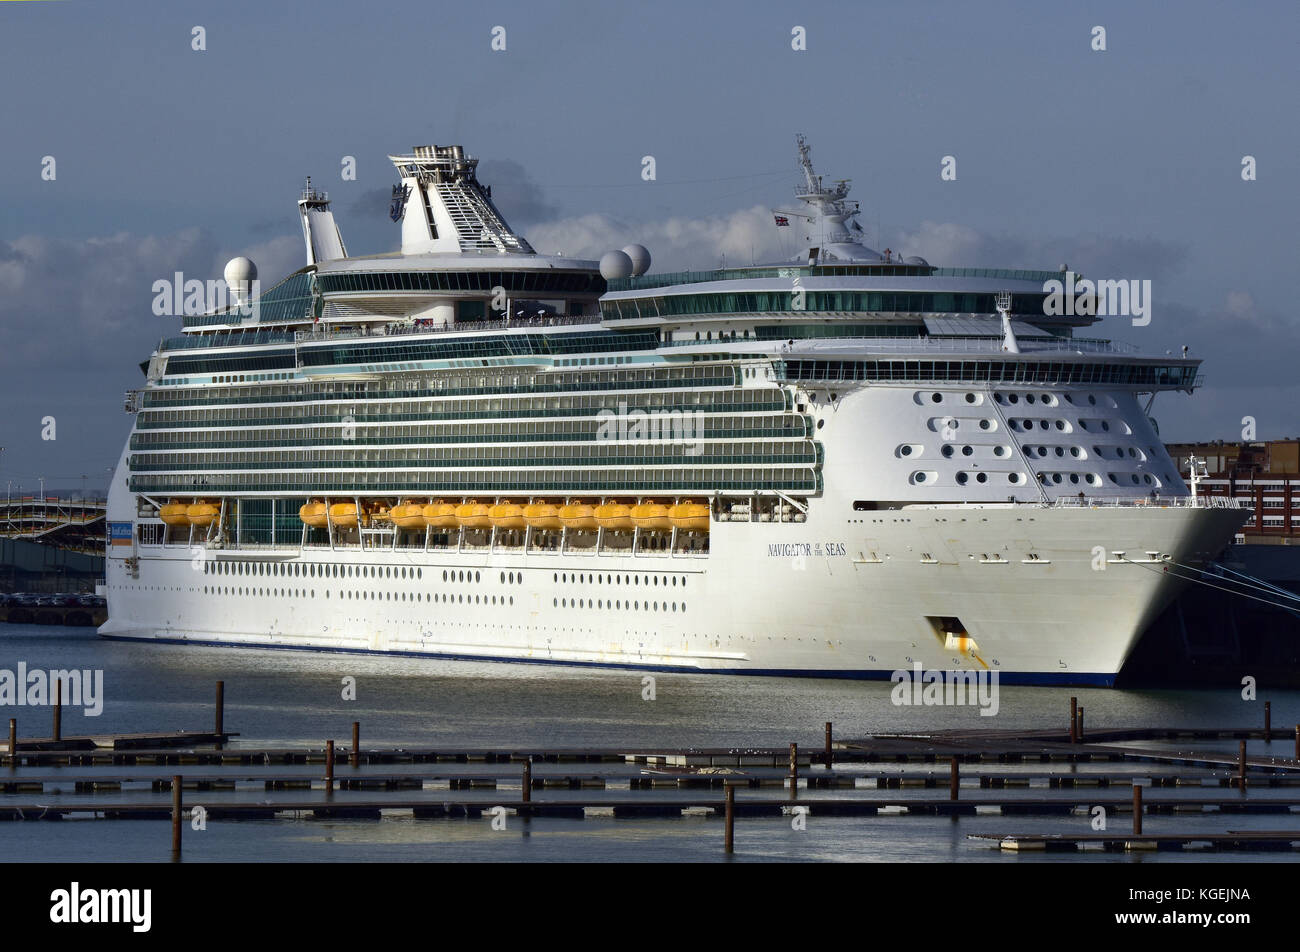 the P and O cruise liner the navigator of the seas alongside in dock or port of Southampton. Cruising ships and - Stock Image